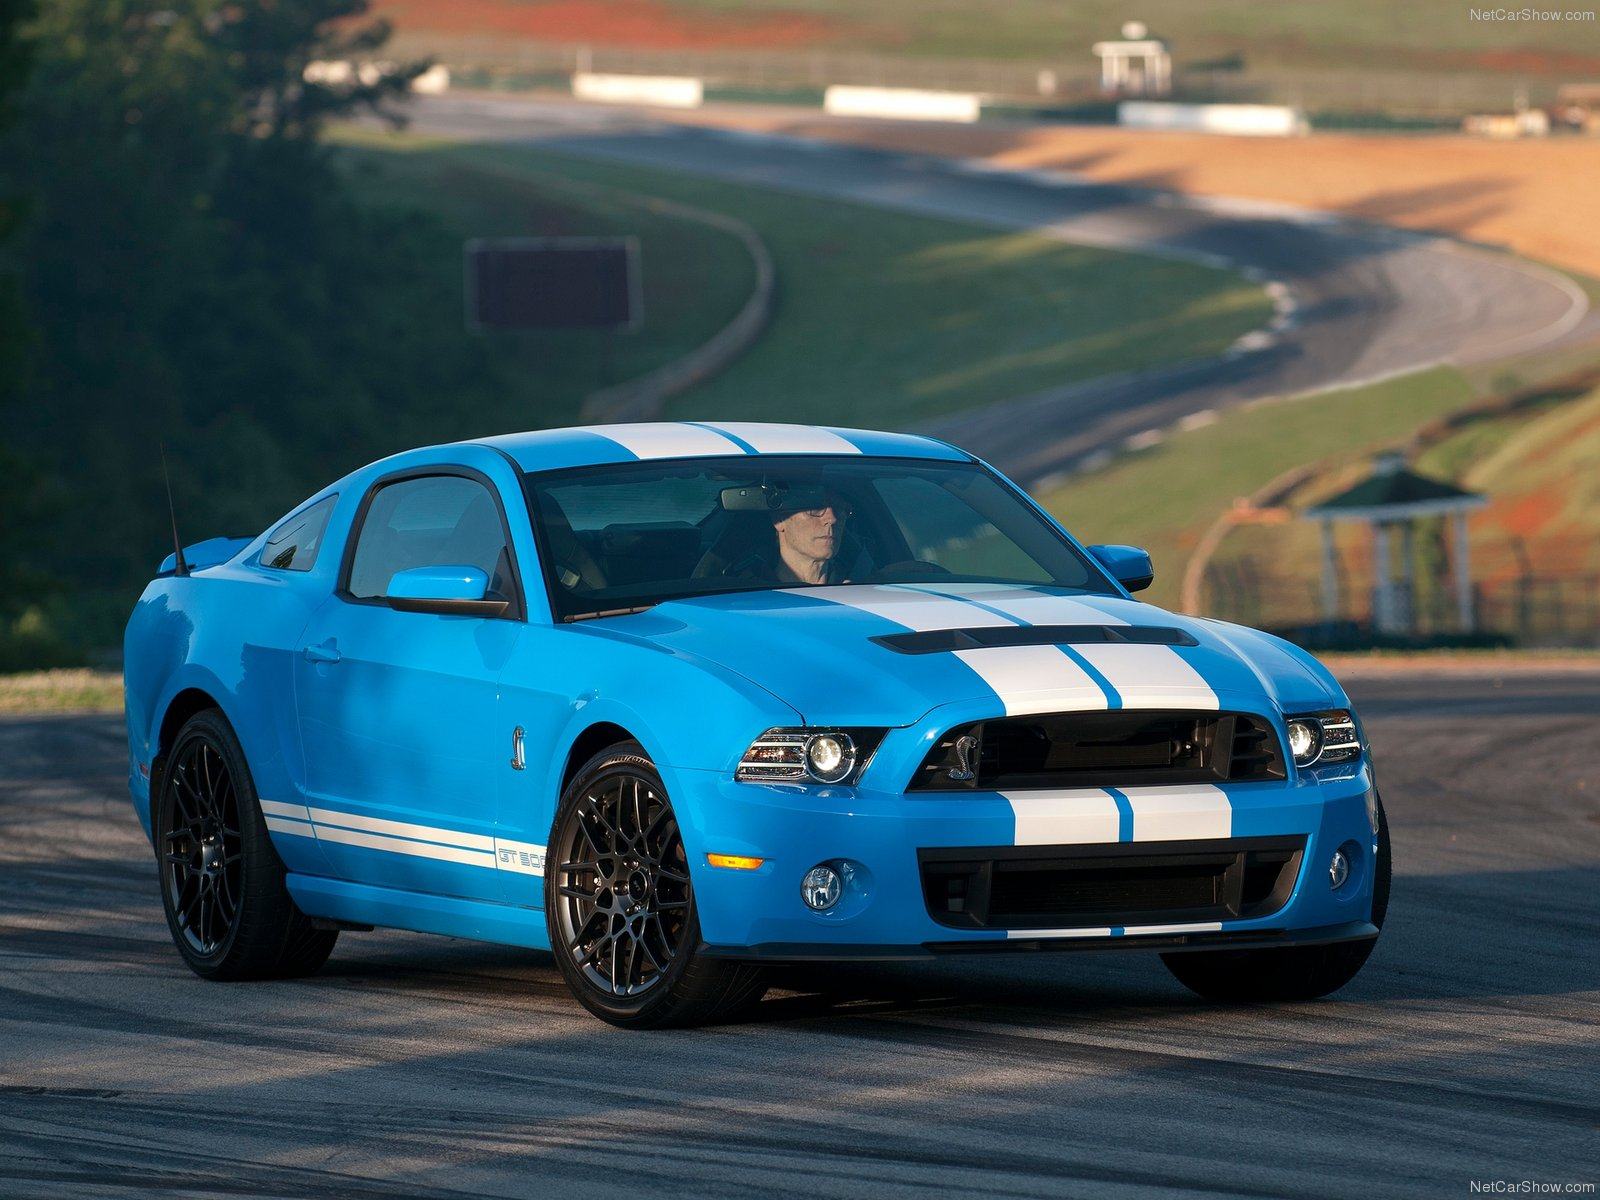 Ford Mustang Shelby GT500 2013 wallpaper 1600x1200 222114 1600x1200